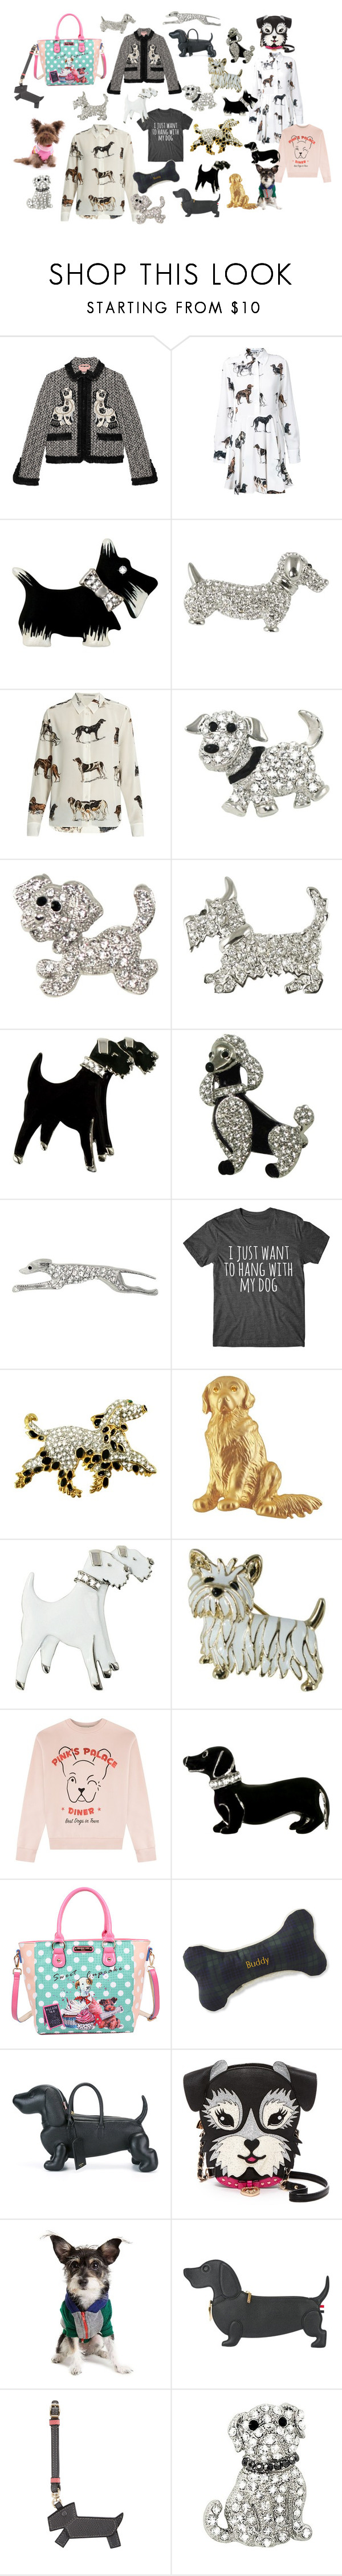 """""""Crazy Dog Lady"""" by eternal-collection on Polyvore featuring Gucci, STELLA McCARTNEY, Être Cécile, Nicole Lee, L.L.Bean, Thom Browne, Betsey Johnson, Valextra and Zack & Zoey"""